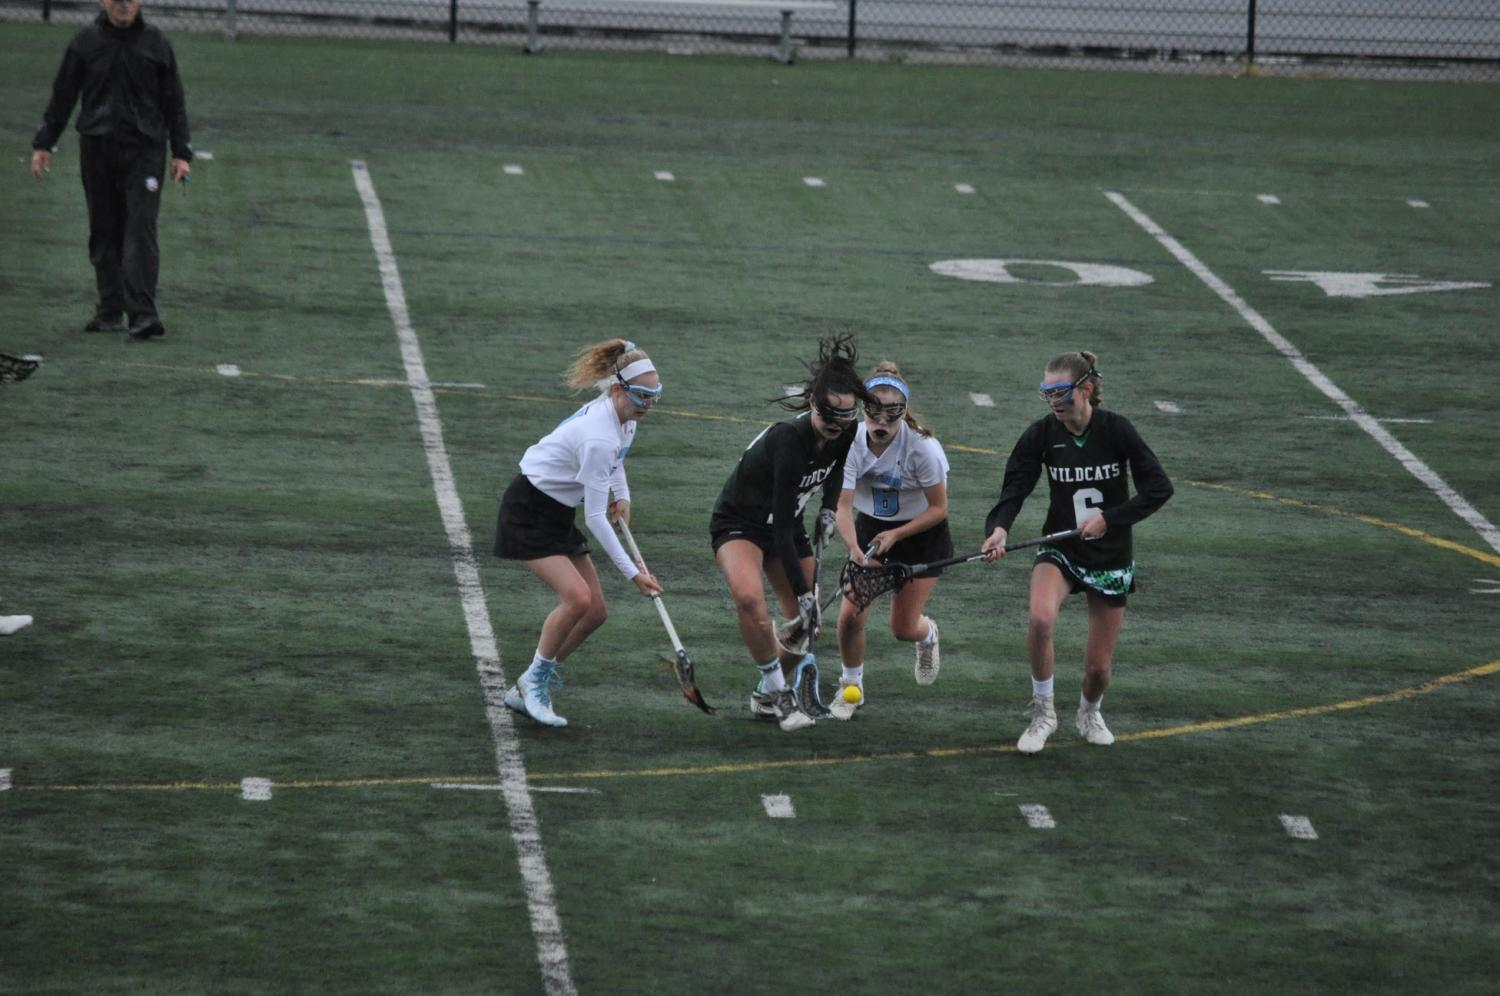 Midfielders Emily Schweitzer and Hanna Freund fight for the ground ball to stop the Wildcats' offensive break. The Vikes eliminated Walter Johnson from the playoffs Friday night. Photo courtesy of Jaiwen Hsu